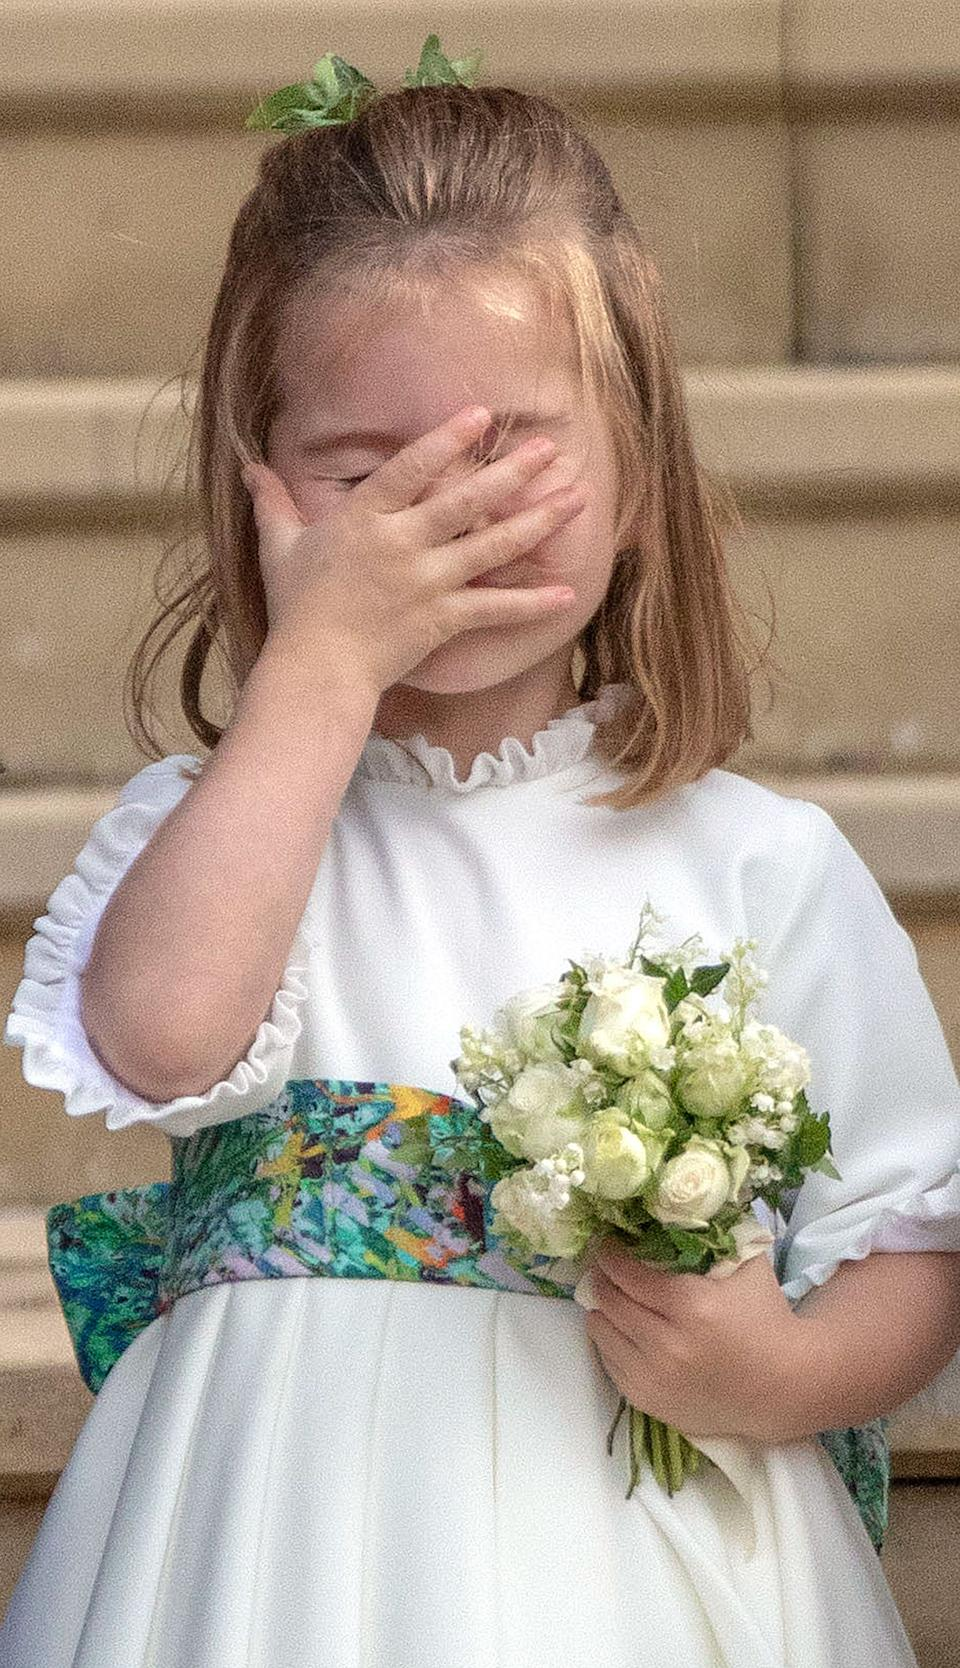 <p>We would love to know what she had spotted after the wedding of Princess Eugenie and Jack Brooksbank in October 2018. (Steve Parsons/AFP)</p>